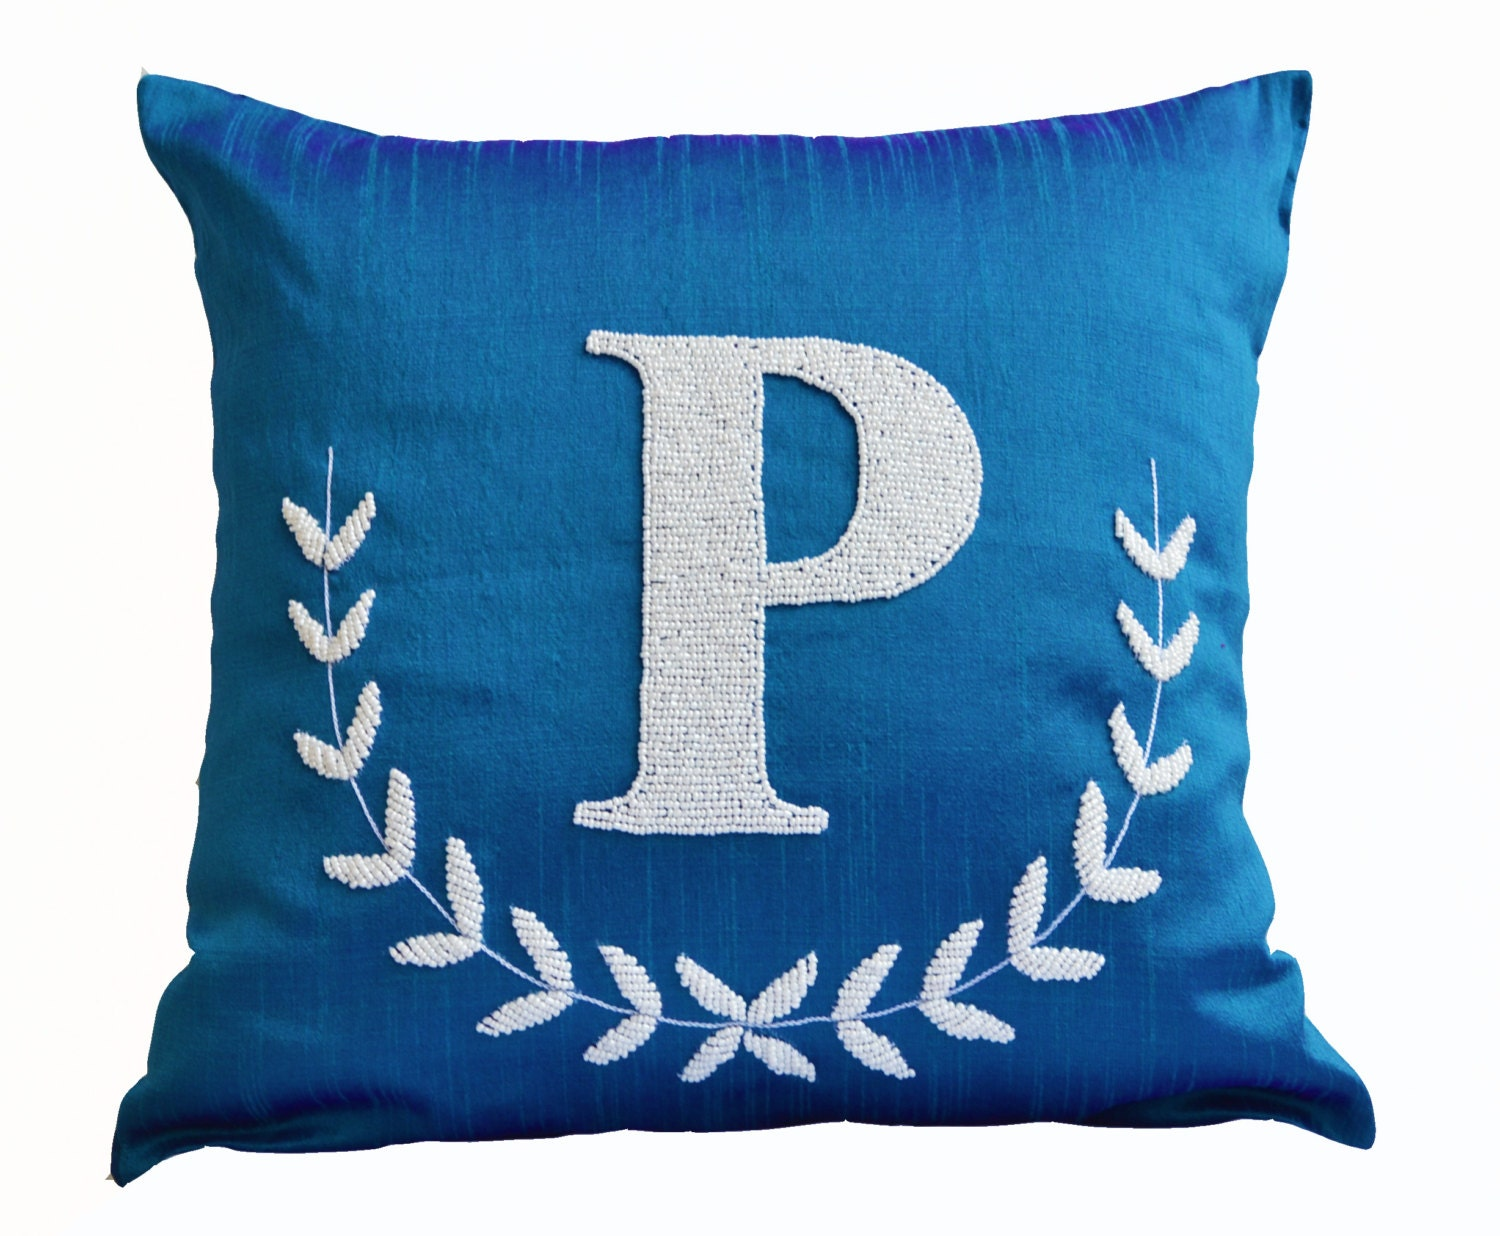 Monogram Letter Throw Pillow : Monogram Pillow Blue Silk Pillow Customized letter pillow